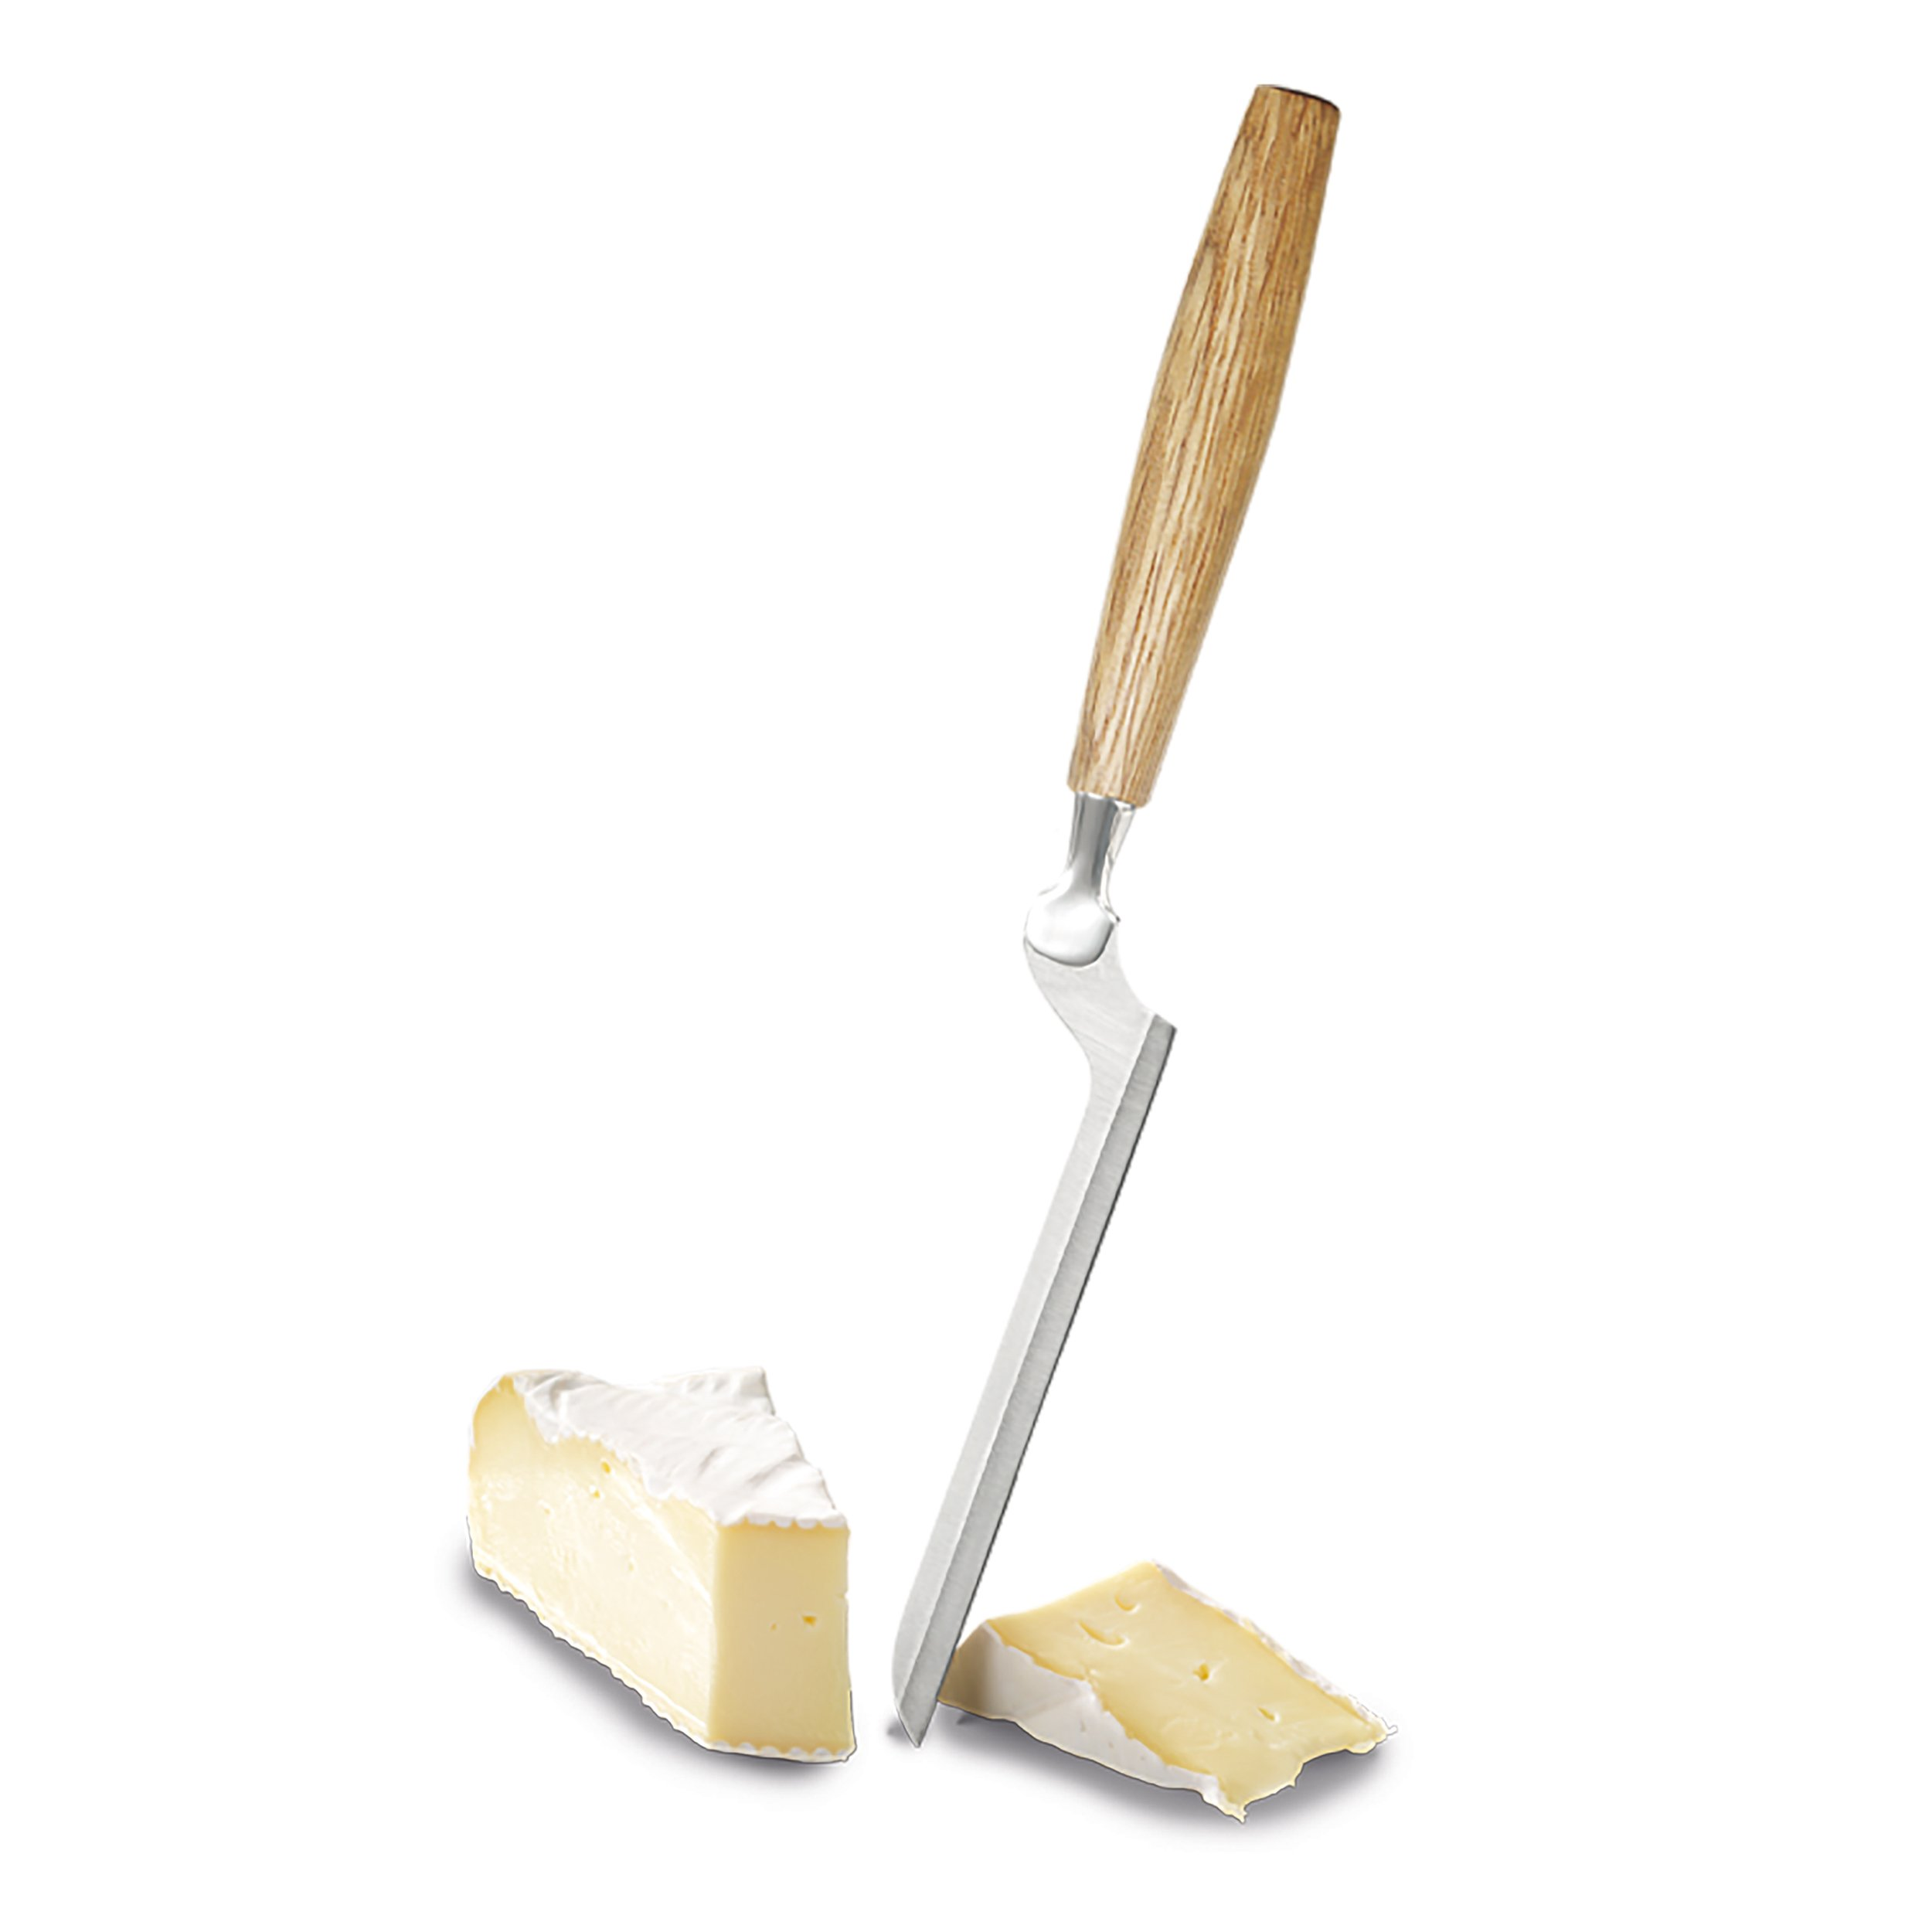 Boska Holland Soft Cheese Knife with European Oak Wood Handle, Slim Blade for Brie, 10 Year Guarantee, Life Collection